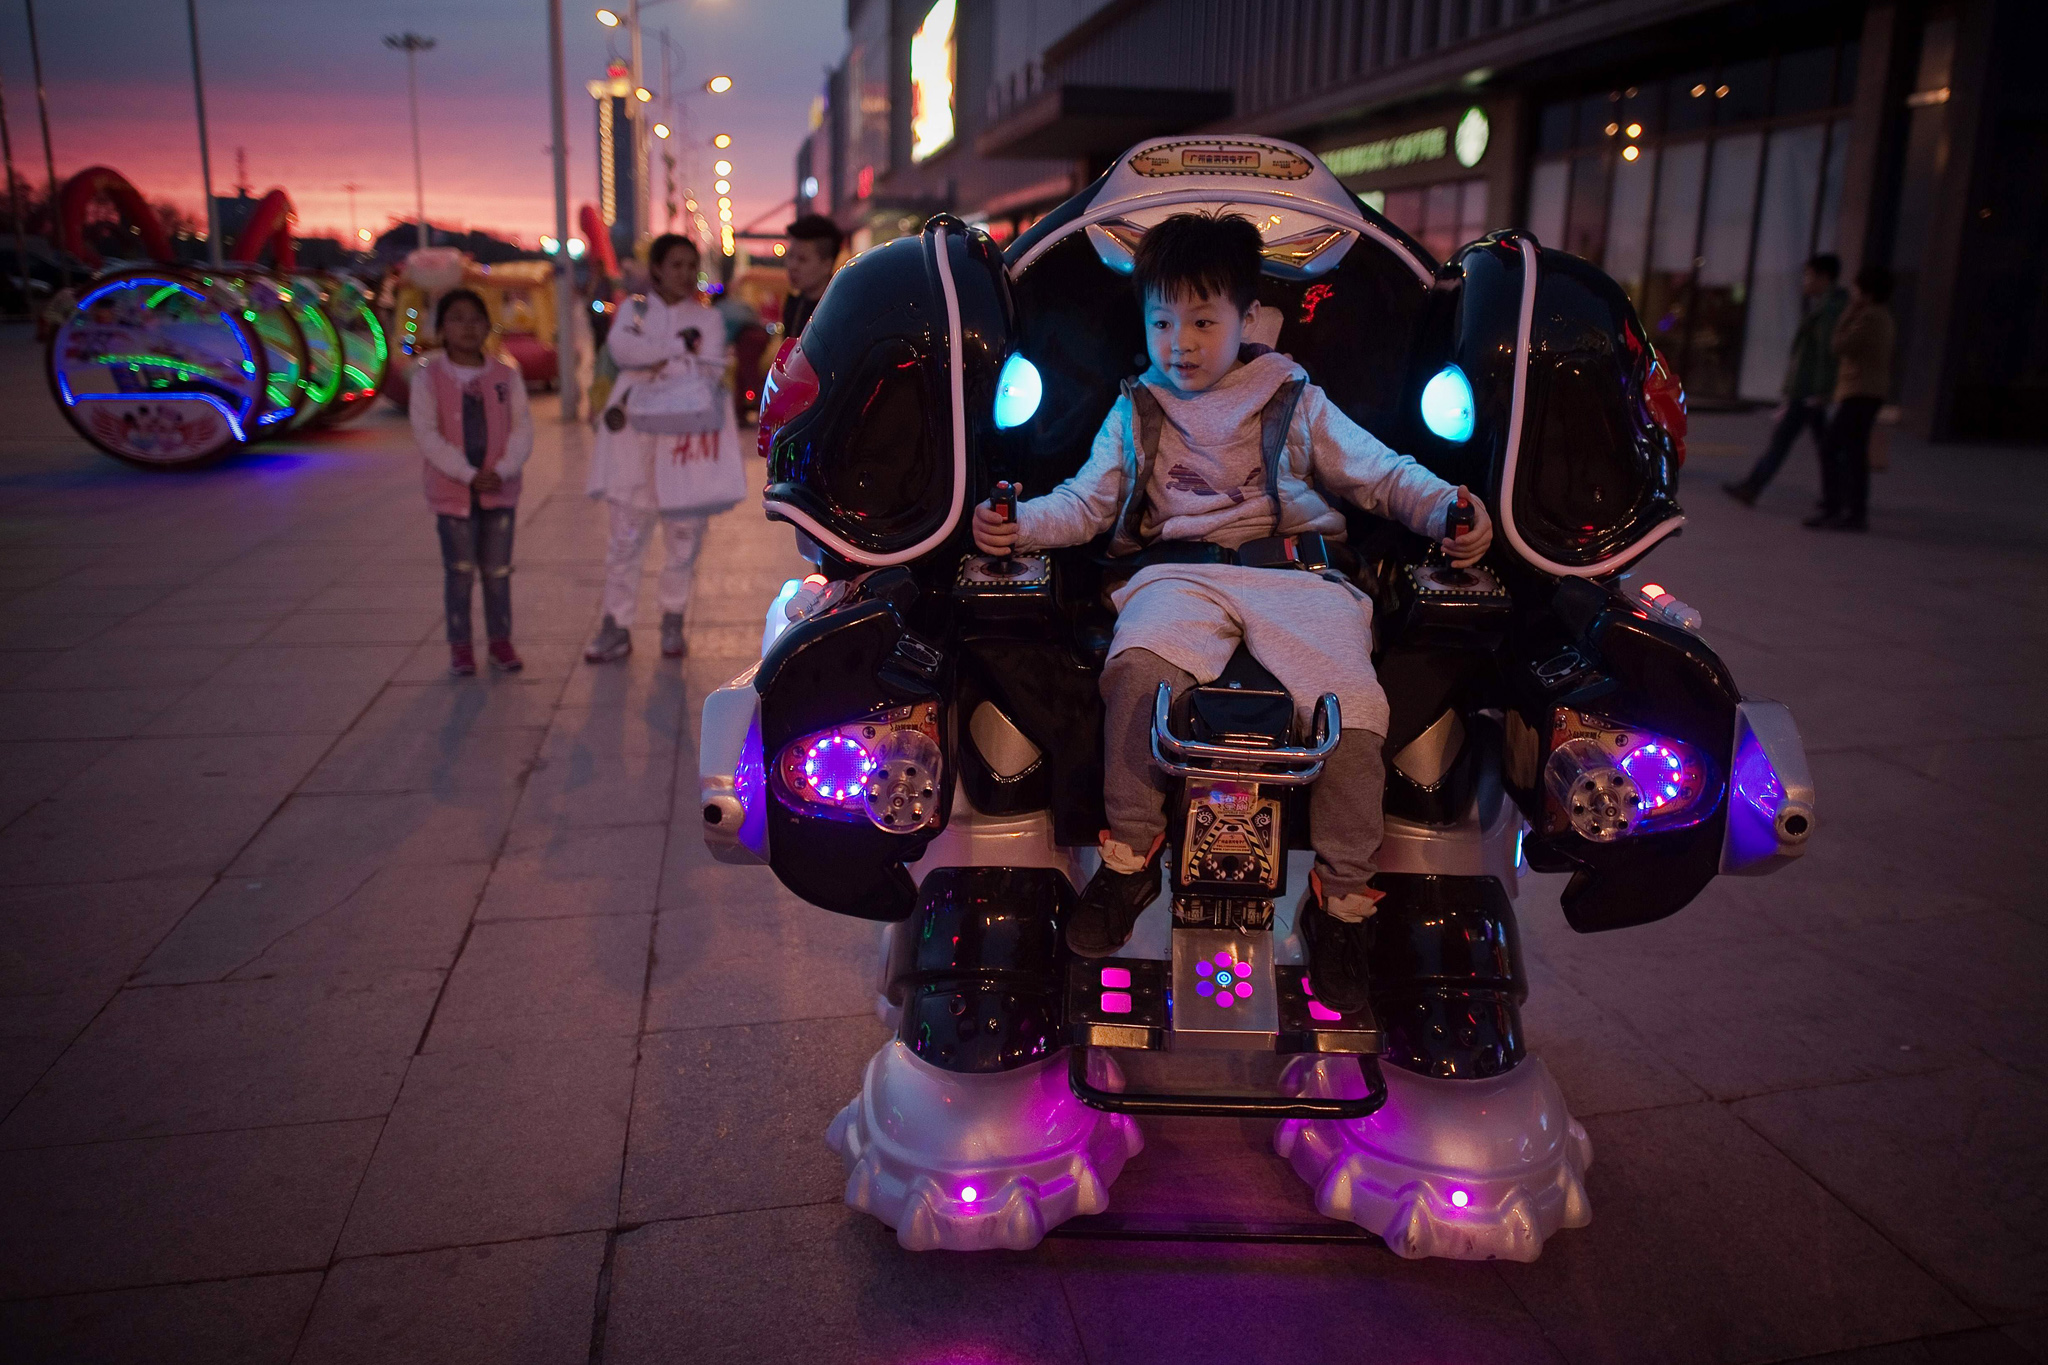 A boy rides a robot style vehicle outsid...A boy rides a robot style vehicle outside a shopping mall in Daqing, Heilongjiang province on May 2, 2016. / AFP PHOTO / NICOLAS ASFOURINICOLAS ASFOURI/AFP/Getty Images